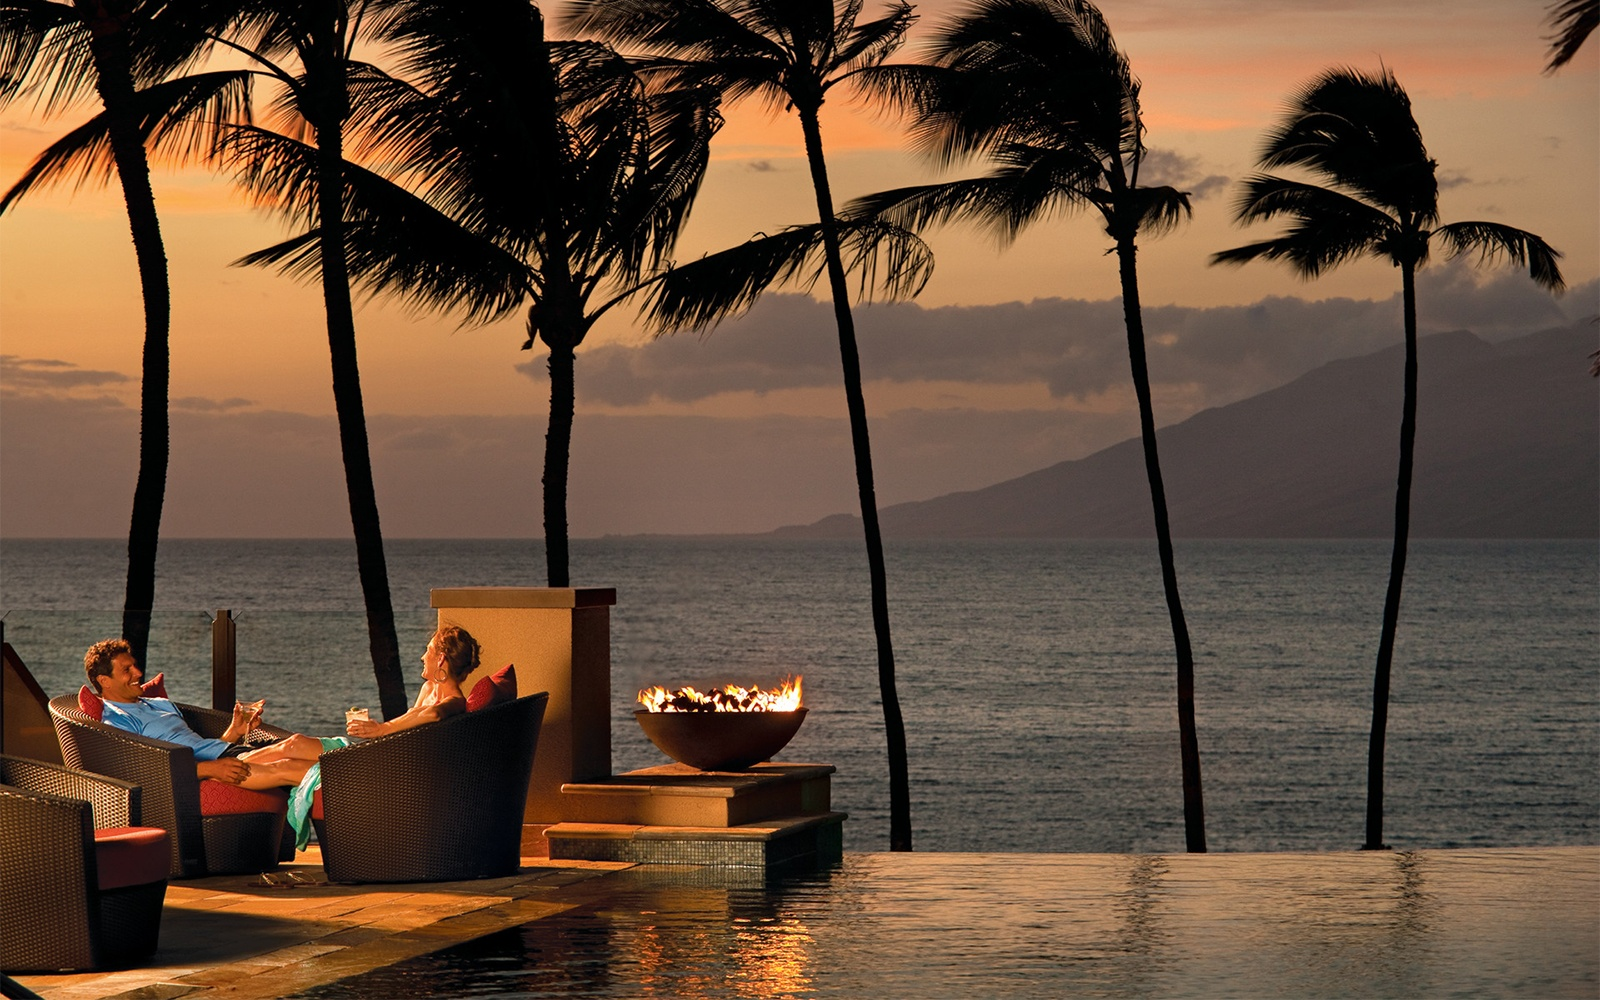 No. 6 Four Seasons Resort Maui at Wailea, Maui, Hawaii